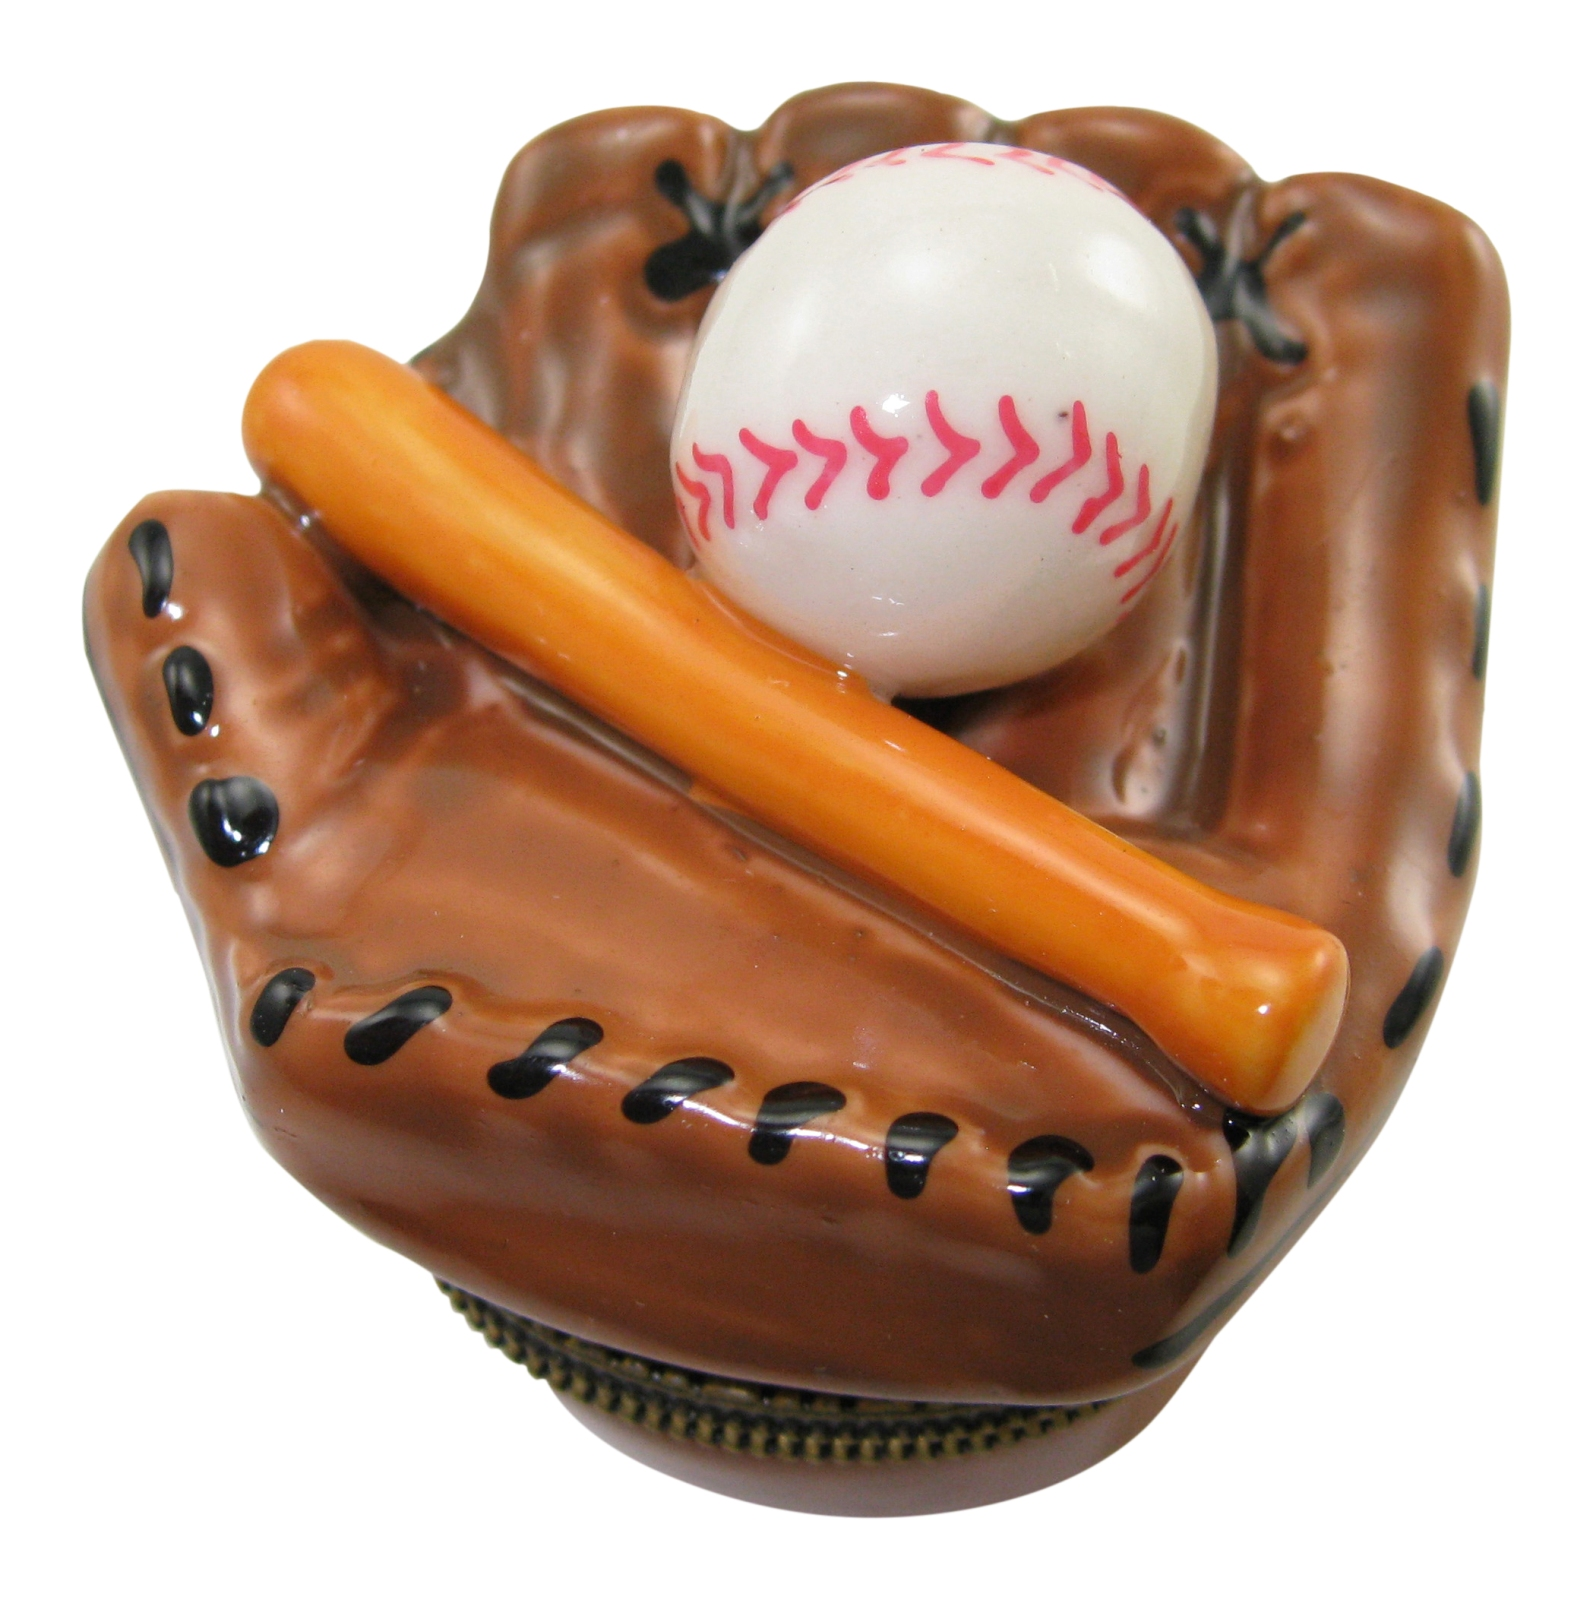 Baseball Glove Team League Bat and Ball Porcelain Hinged Trinket Box